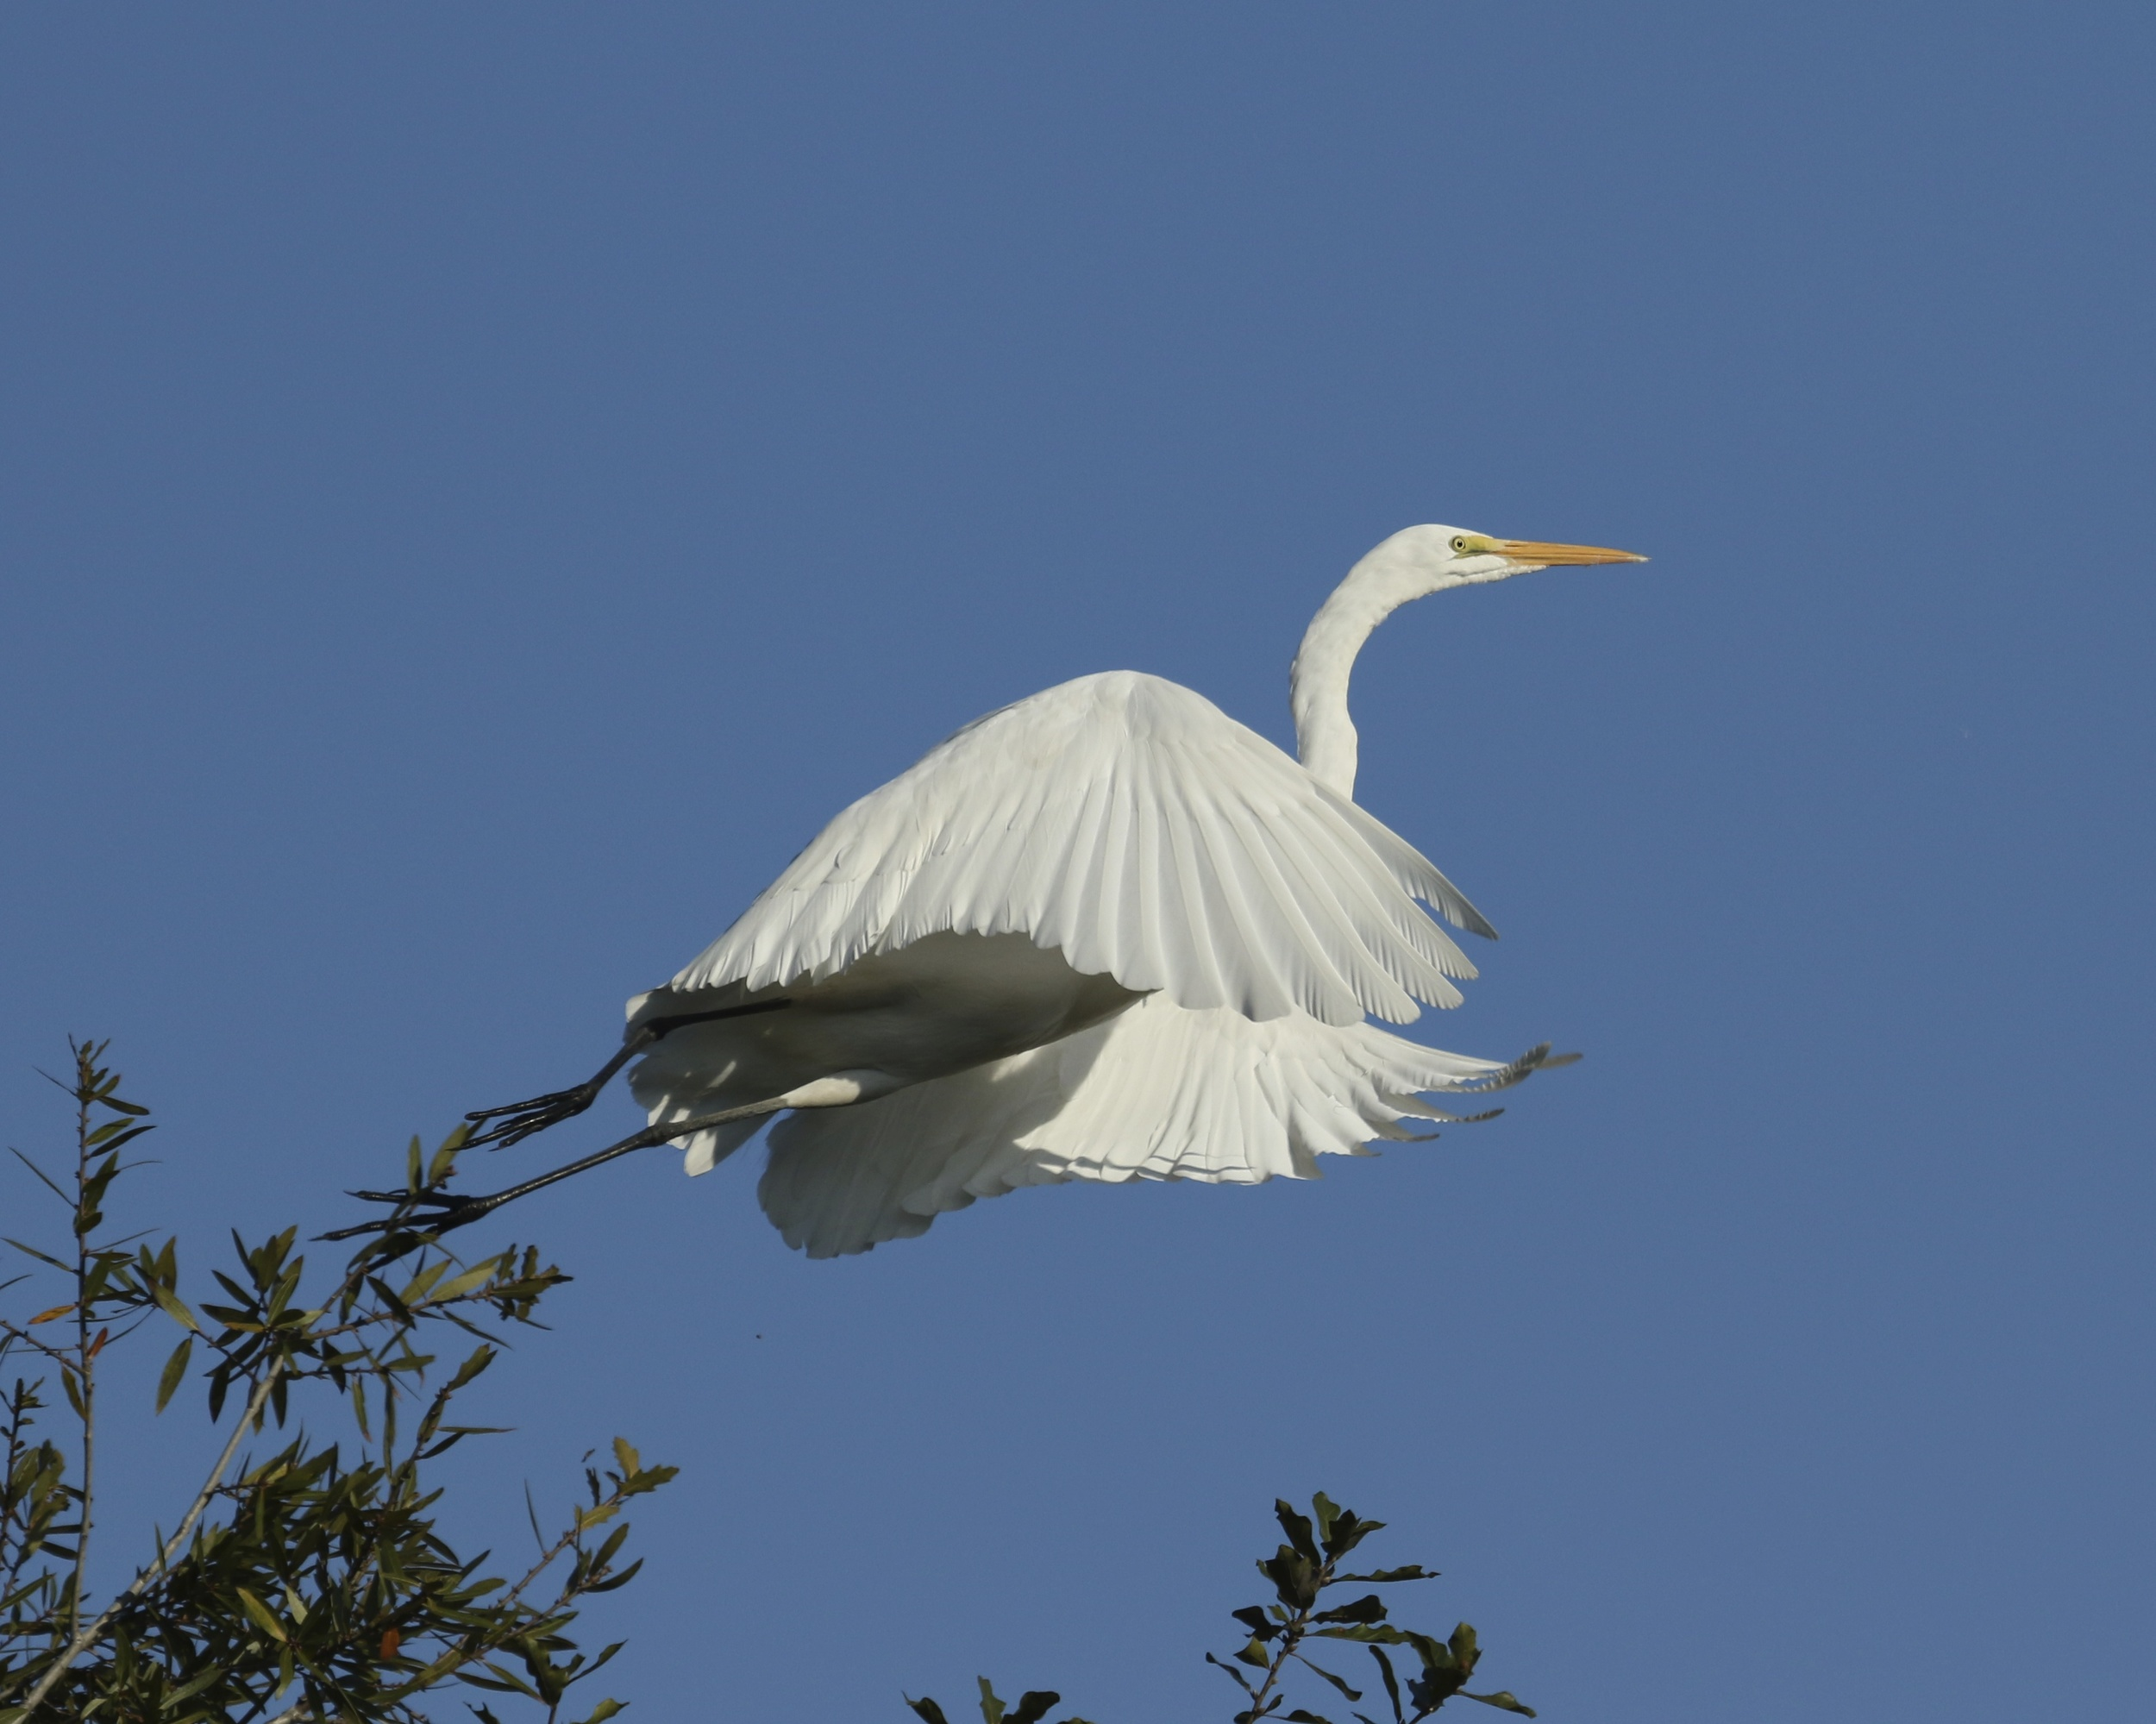 Graceful wings reach forward as it clears the branches...